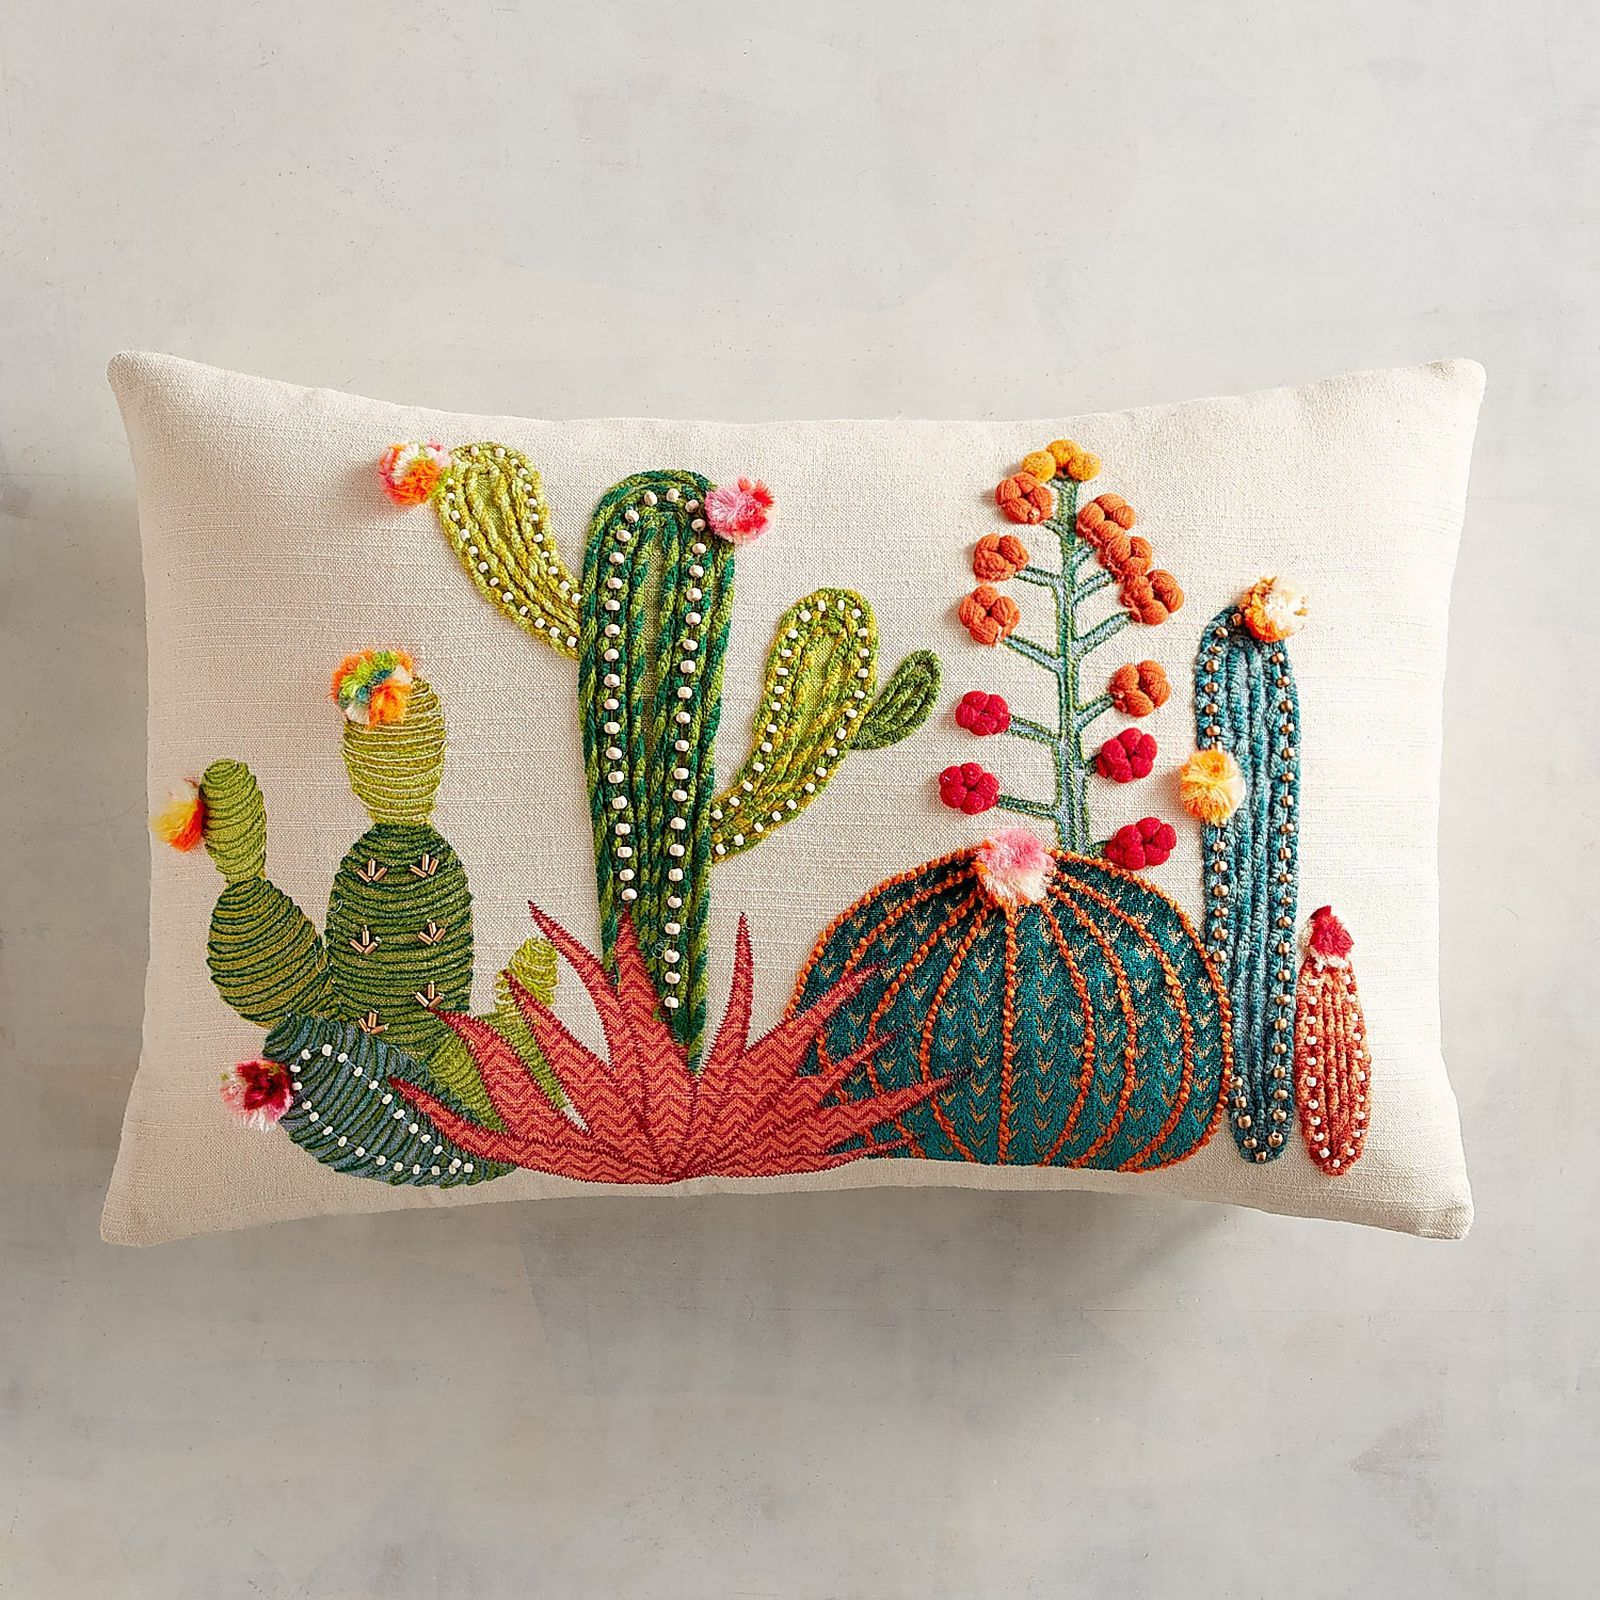 Sunset Cactus Lumbar Pillow Pier 1 Imports Embroidery And Applique Sewing Pillows Cactus Throw Pillows Embroidery Stitches